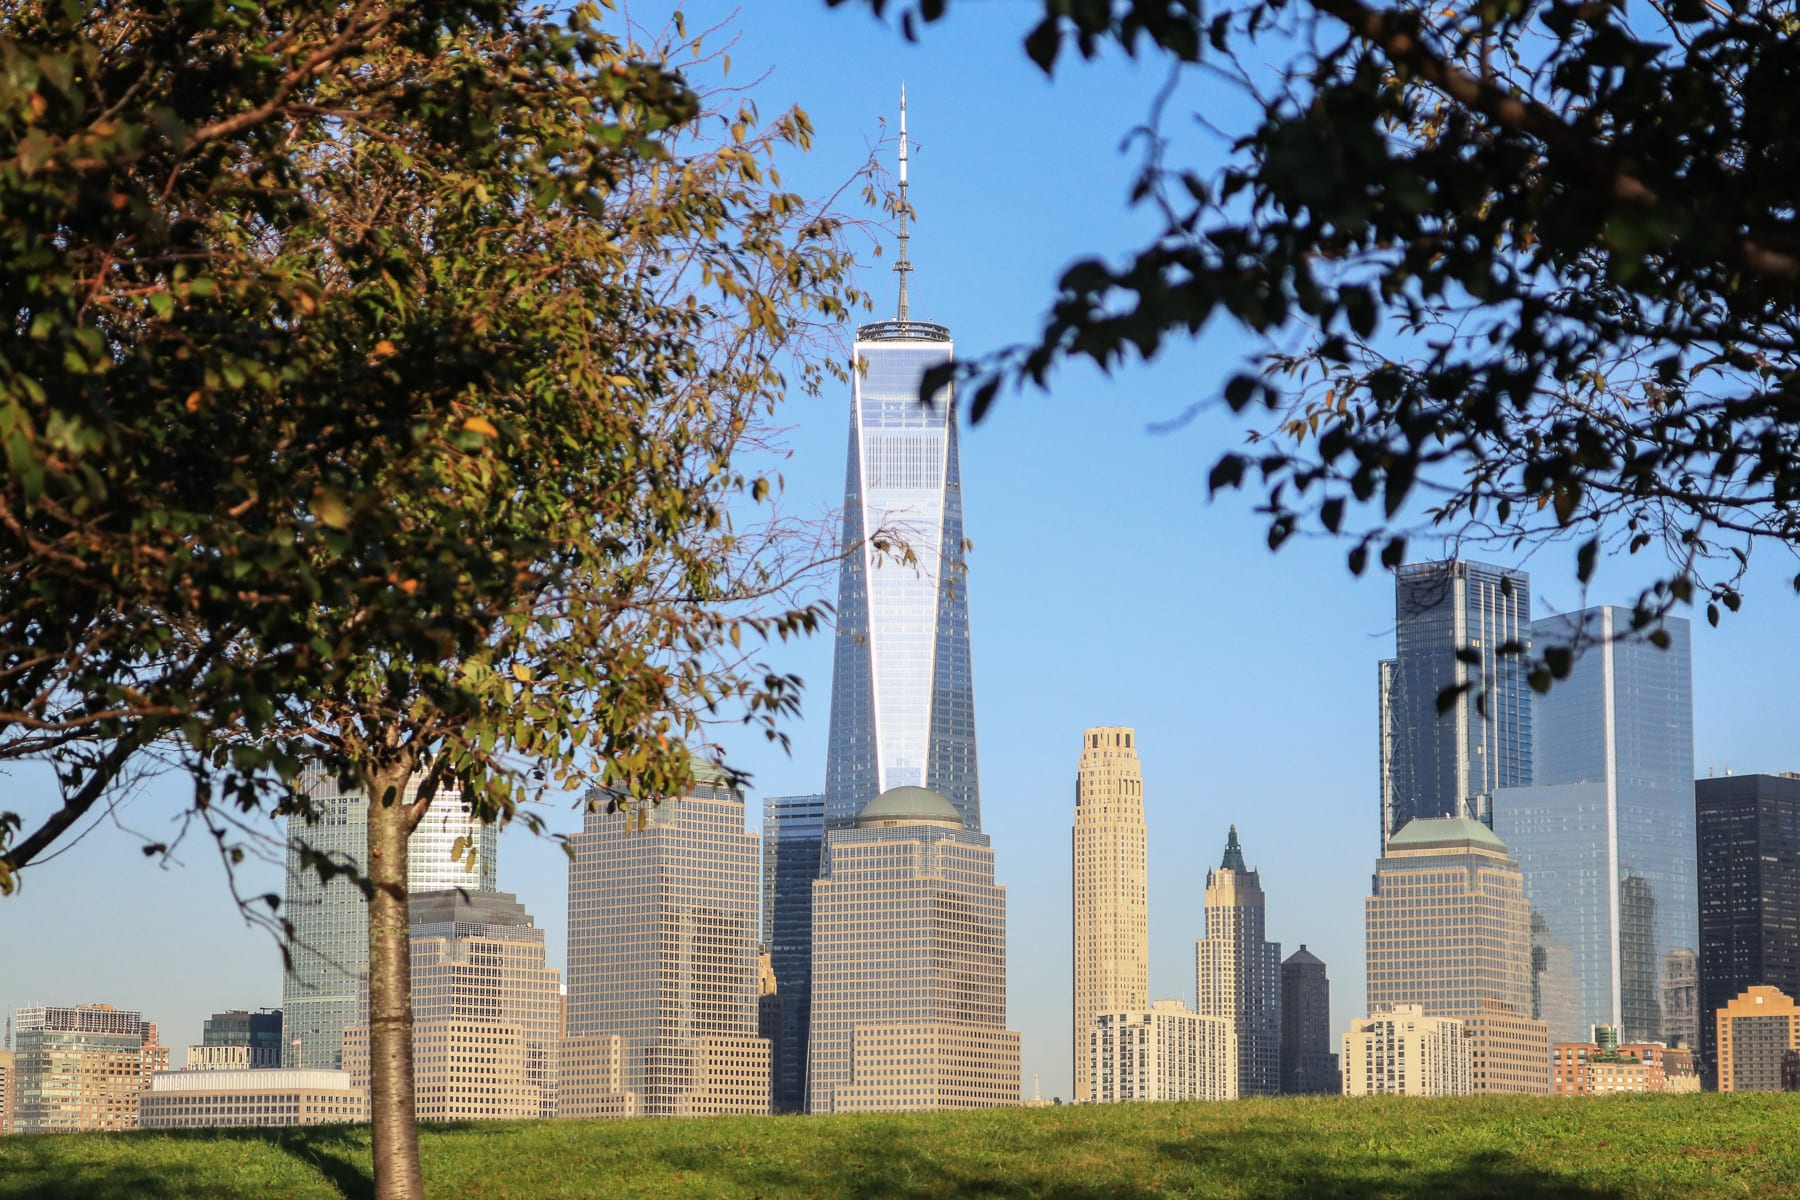 08-NY-journey-jerseycity-freedomtower.jpg